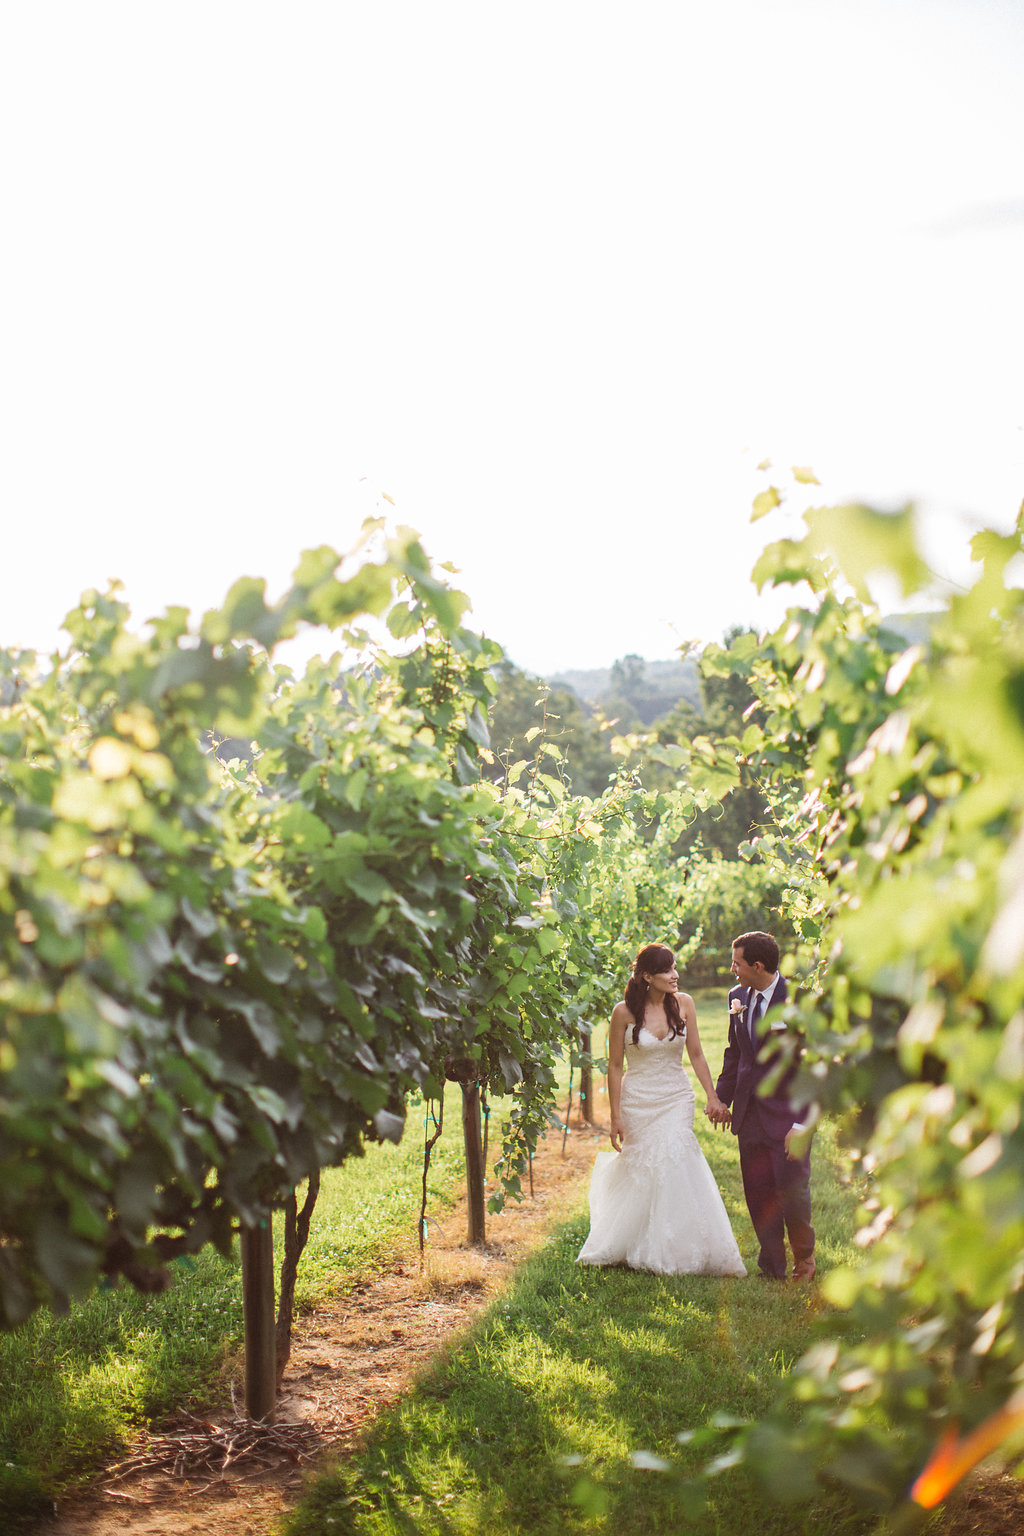 winey-blonde-vineyard-wedding-ideas (24).jpg